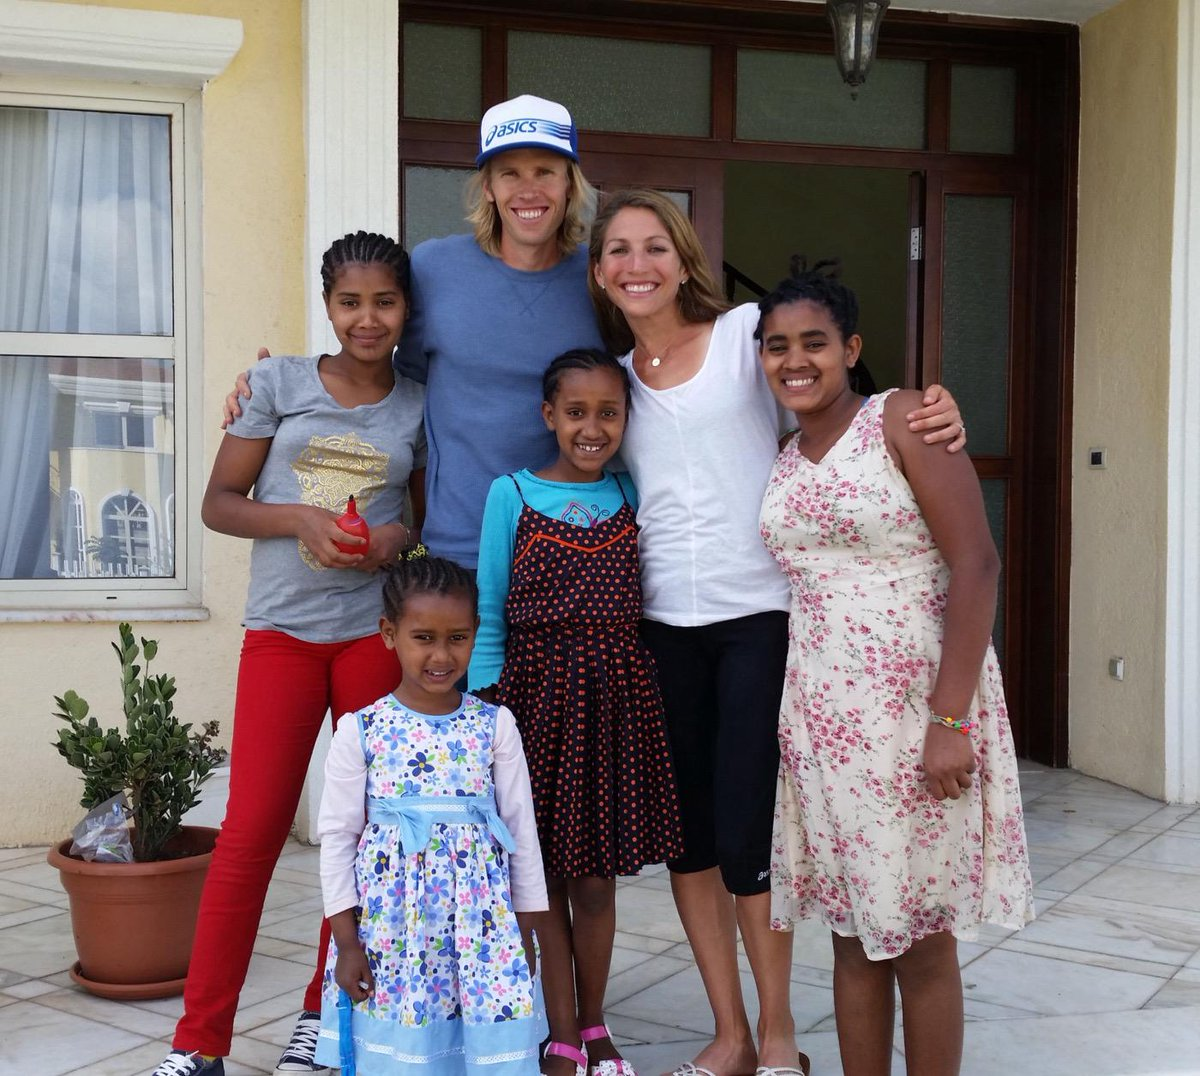 Excited for you to meet these 4 sisters, now our daughters, adopted from Ethiopia! Hana, Mia, Jasmine & Lily Hall http://t.co/oGmovklIaV